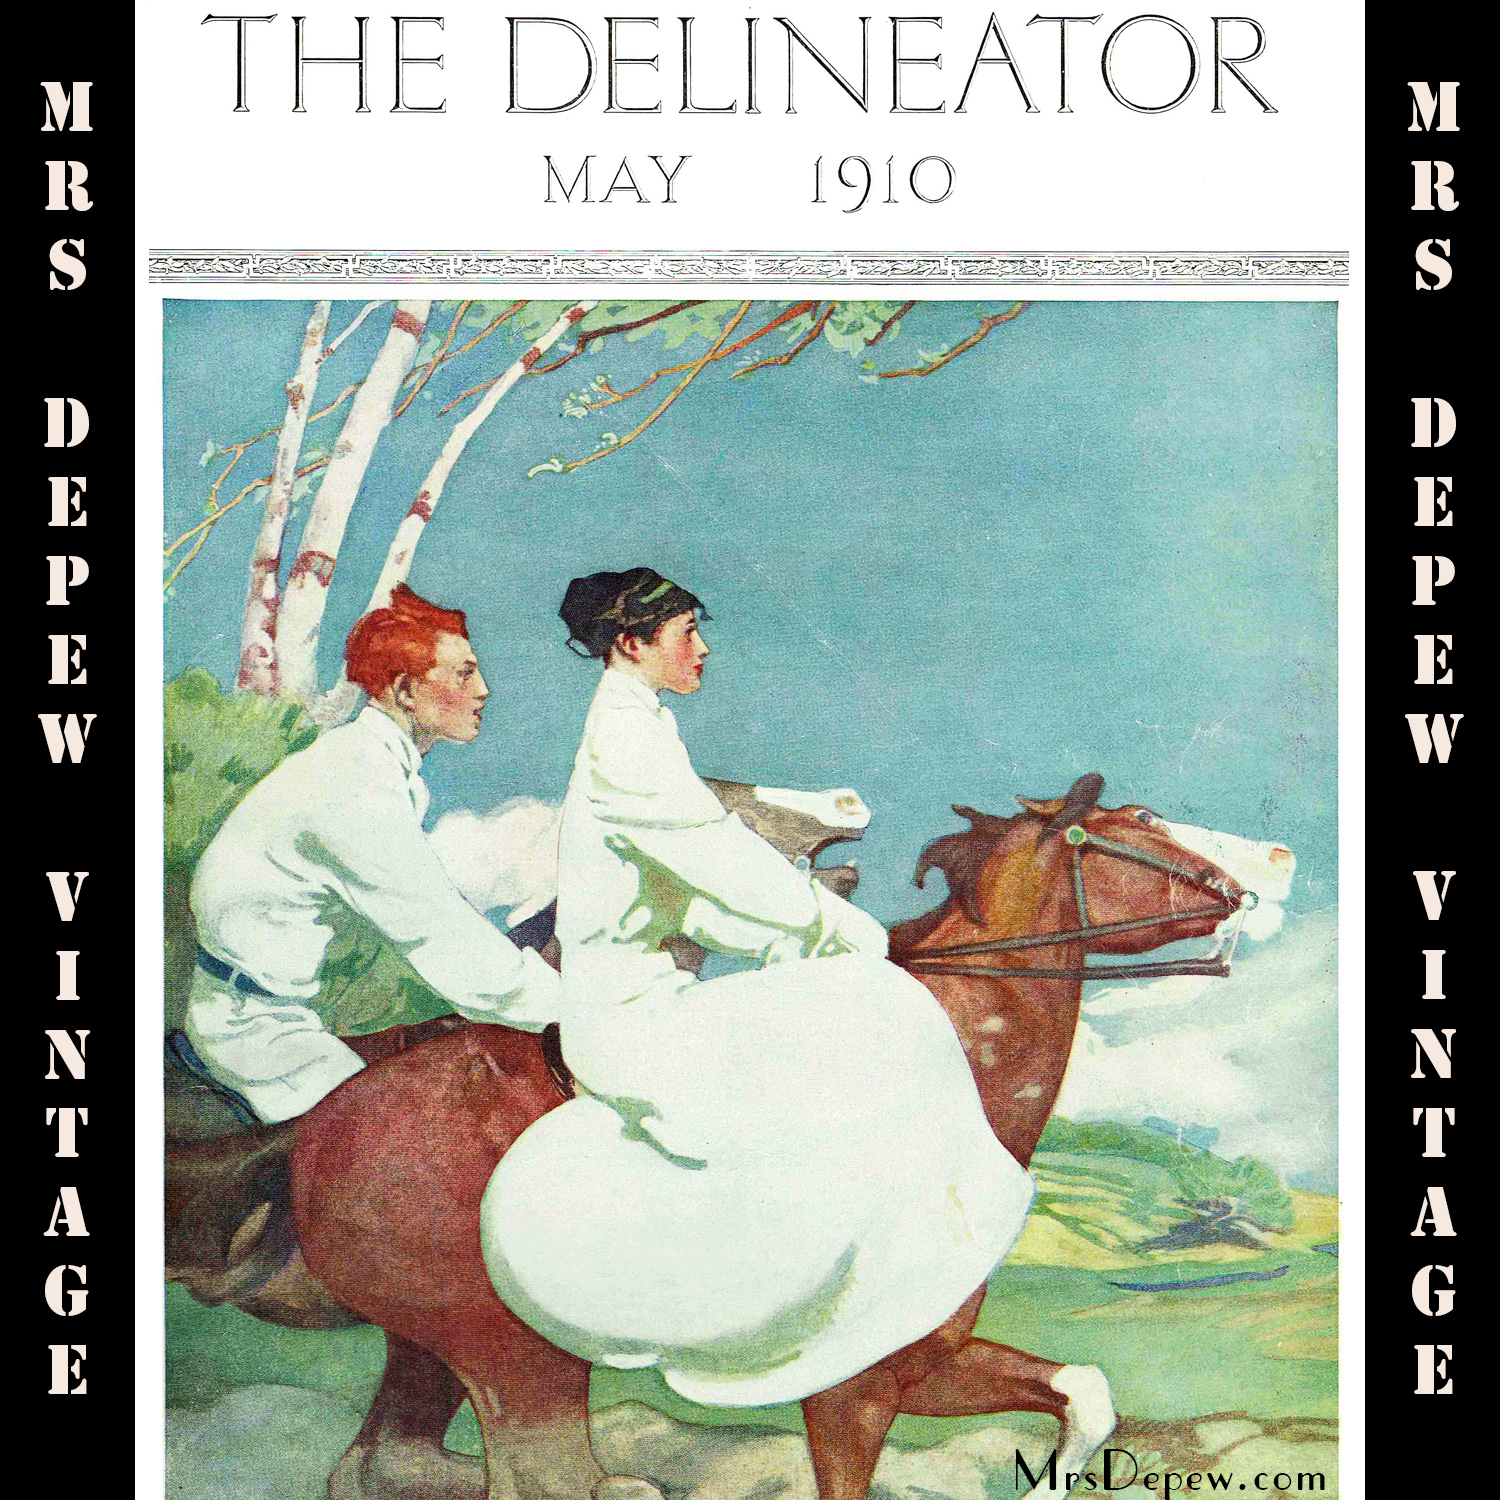 The Delineator May 1910